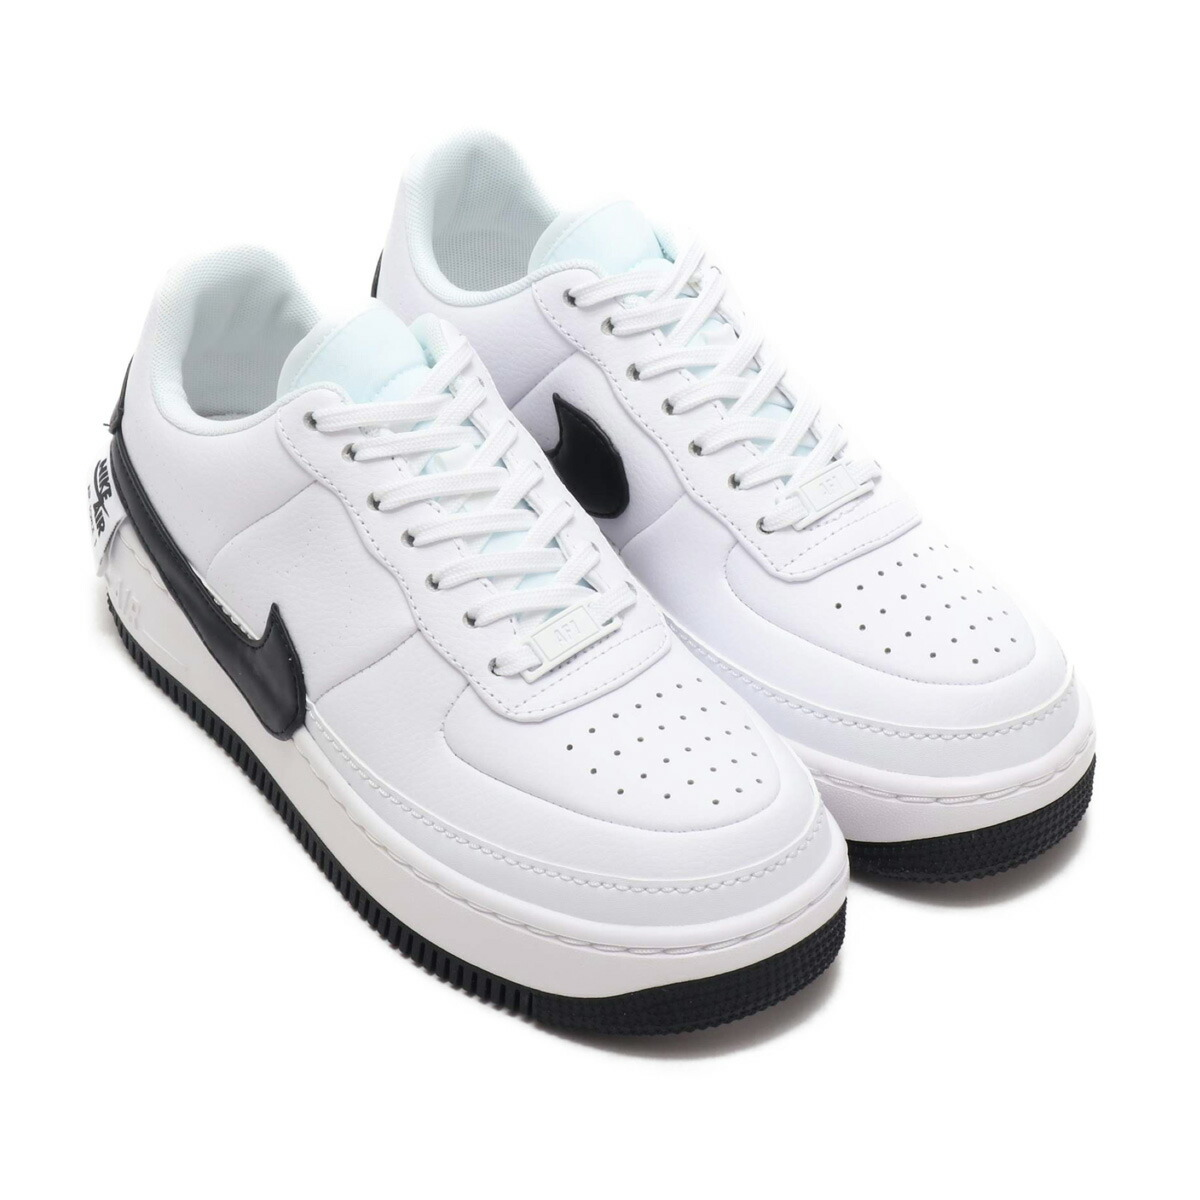 timeless design b6487 e1bd9 Blow up mischievous imagination, and the Nike air force 1 Jester XX women  shoes remake the shoes which are Aiko Nic. The design which the LOGO that I  got ...